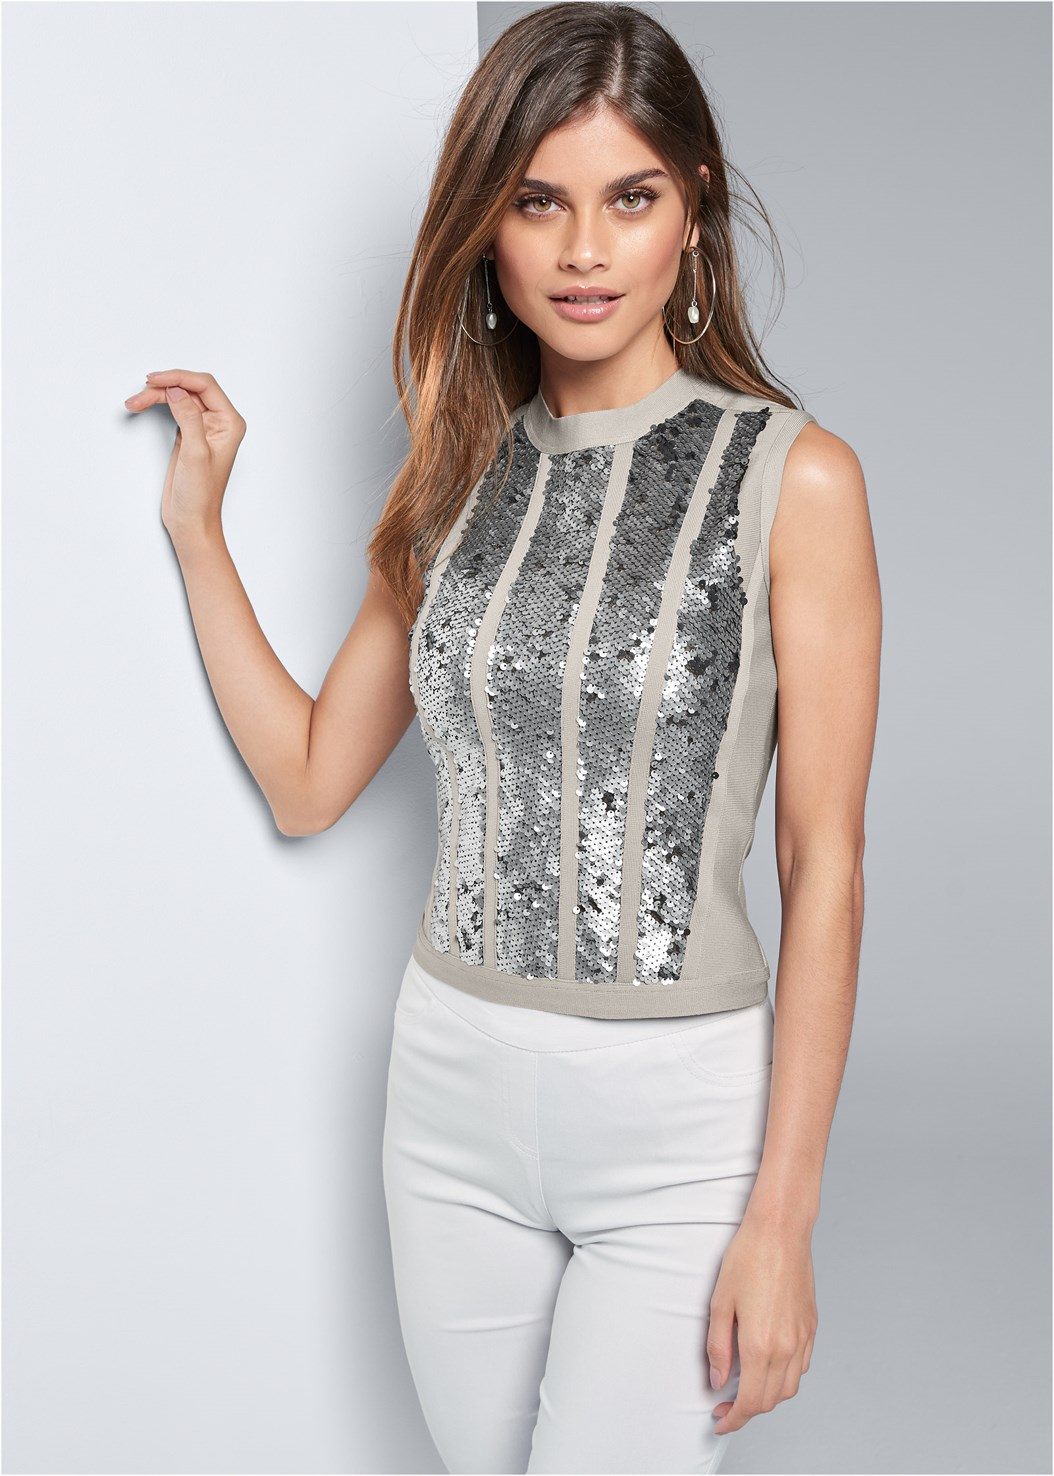 Bandage Sequin Sweater,Mid Rise Slimming Stretch Jeggings,High Heel Strappy Sandals